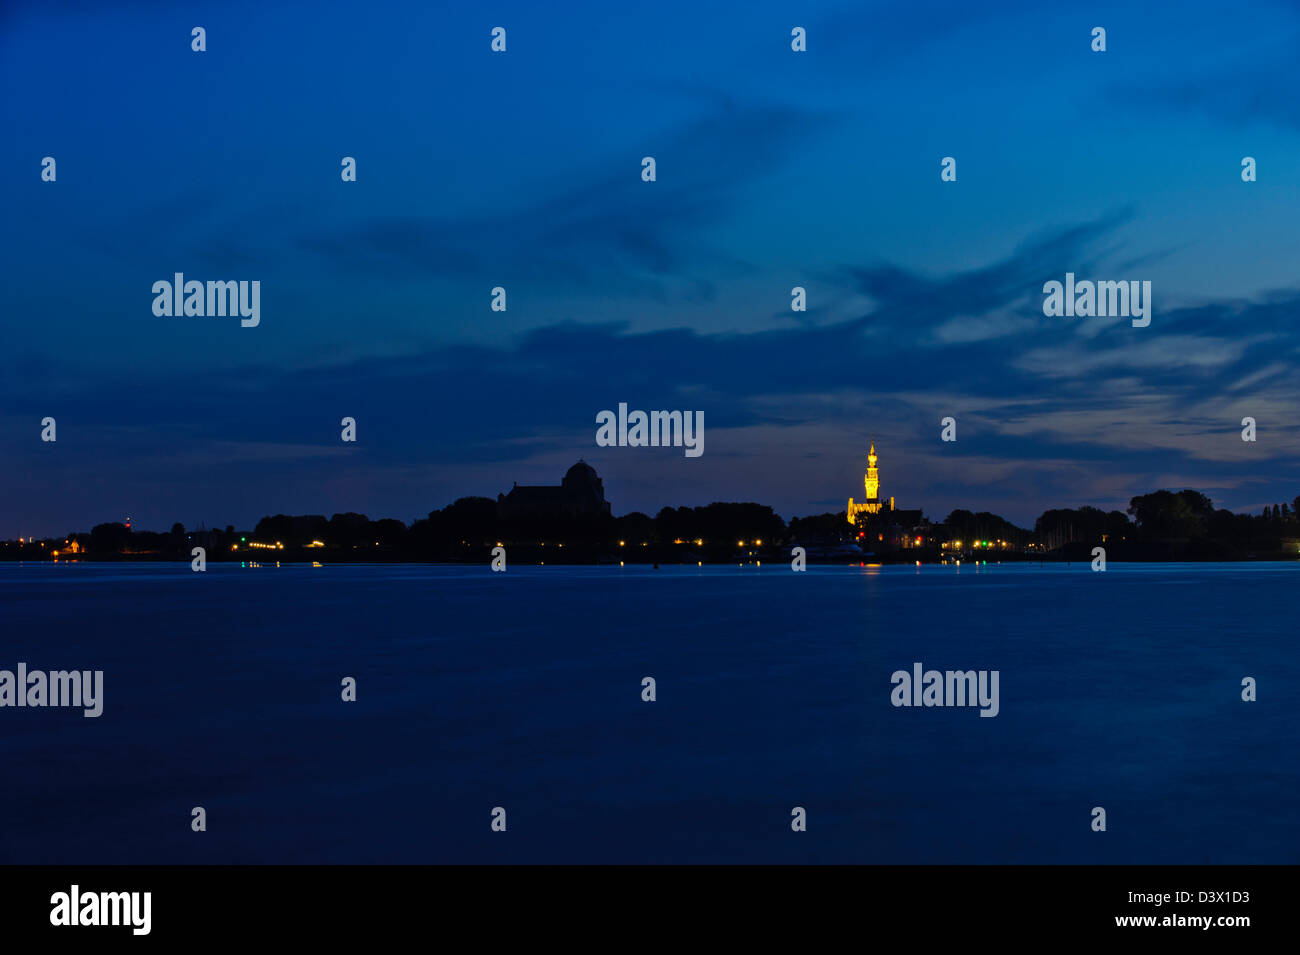 Dusk at  the Veerse Meer. Veere  with illuminated Town Hall on the background. Walcheren, Zeeland. Netherlands. - Stock Image